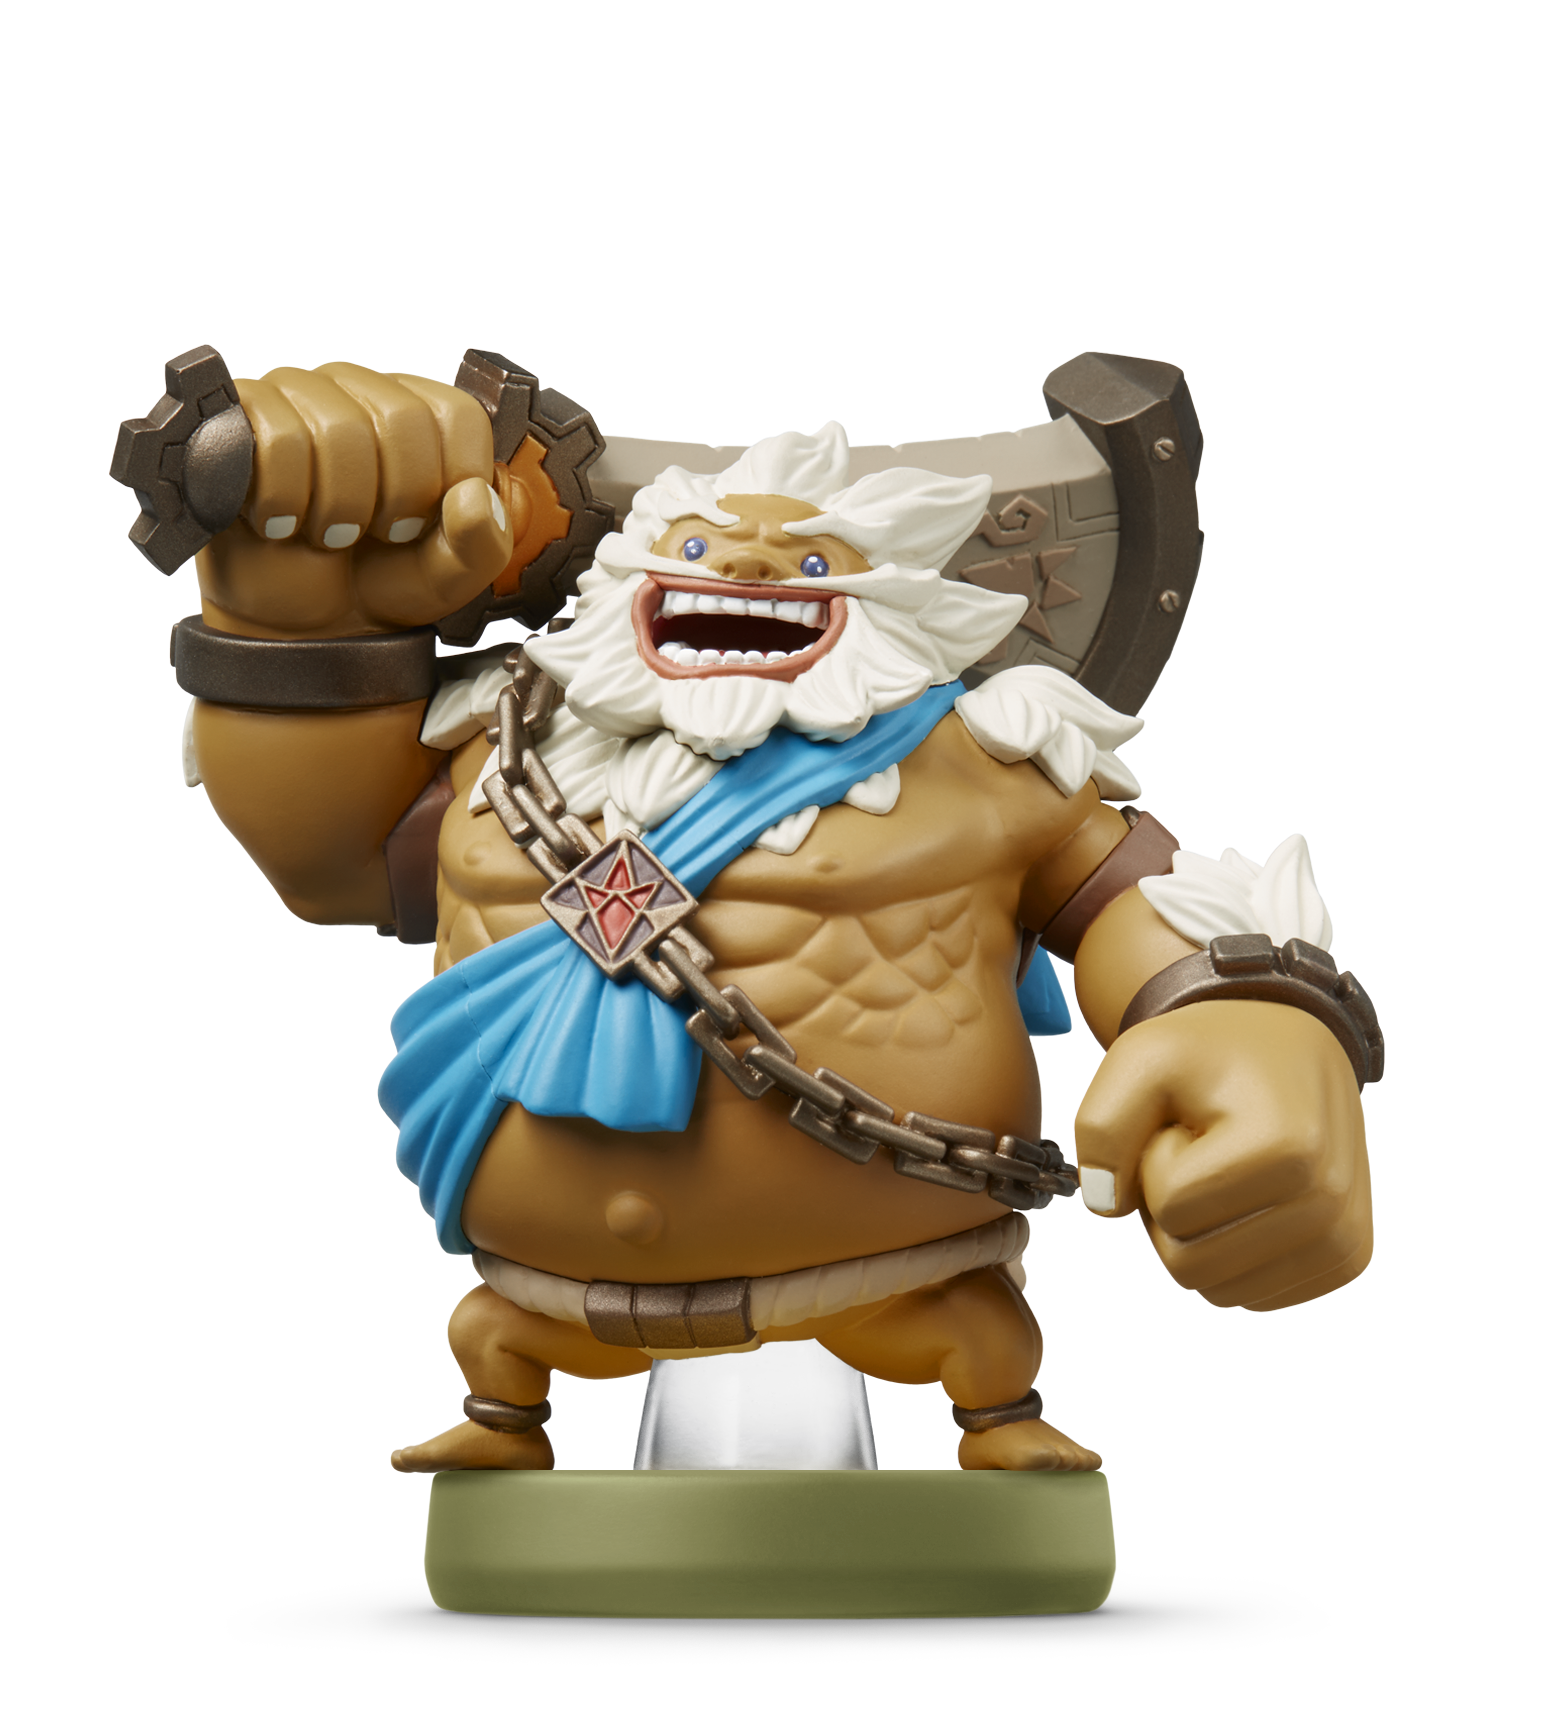 Nintendo Daruk Amiibo Figure (Zelda: Breath of the Wild Series) by Nintendo